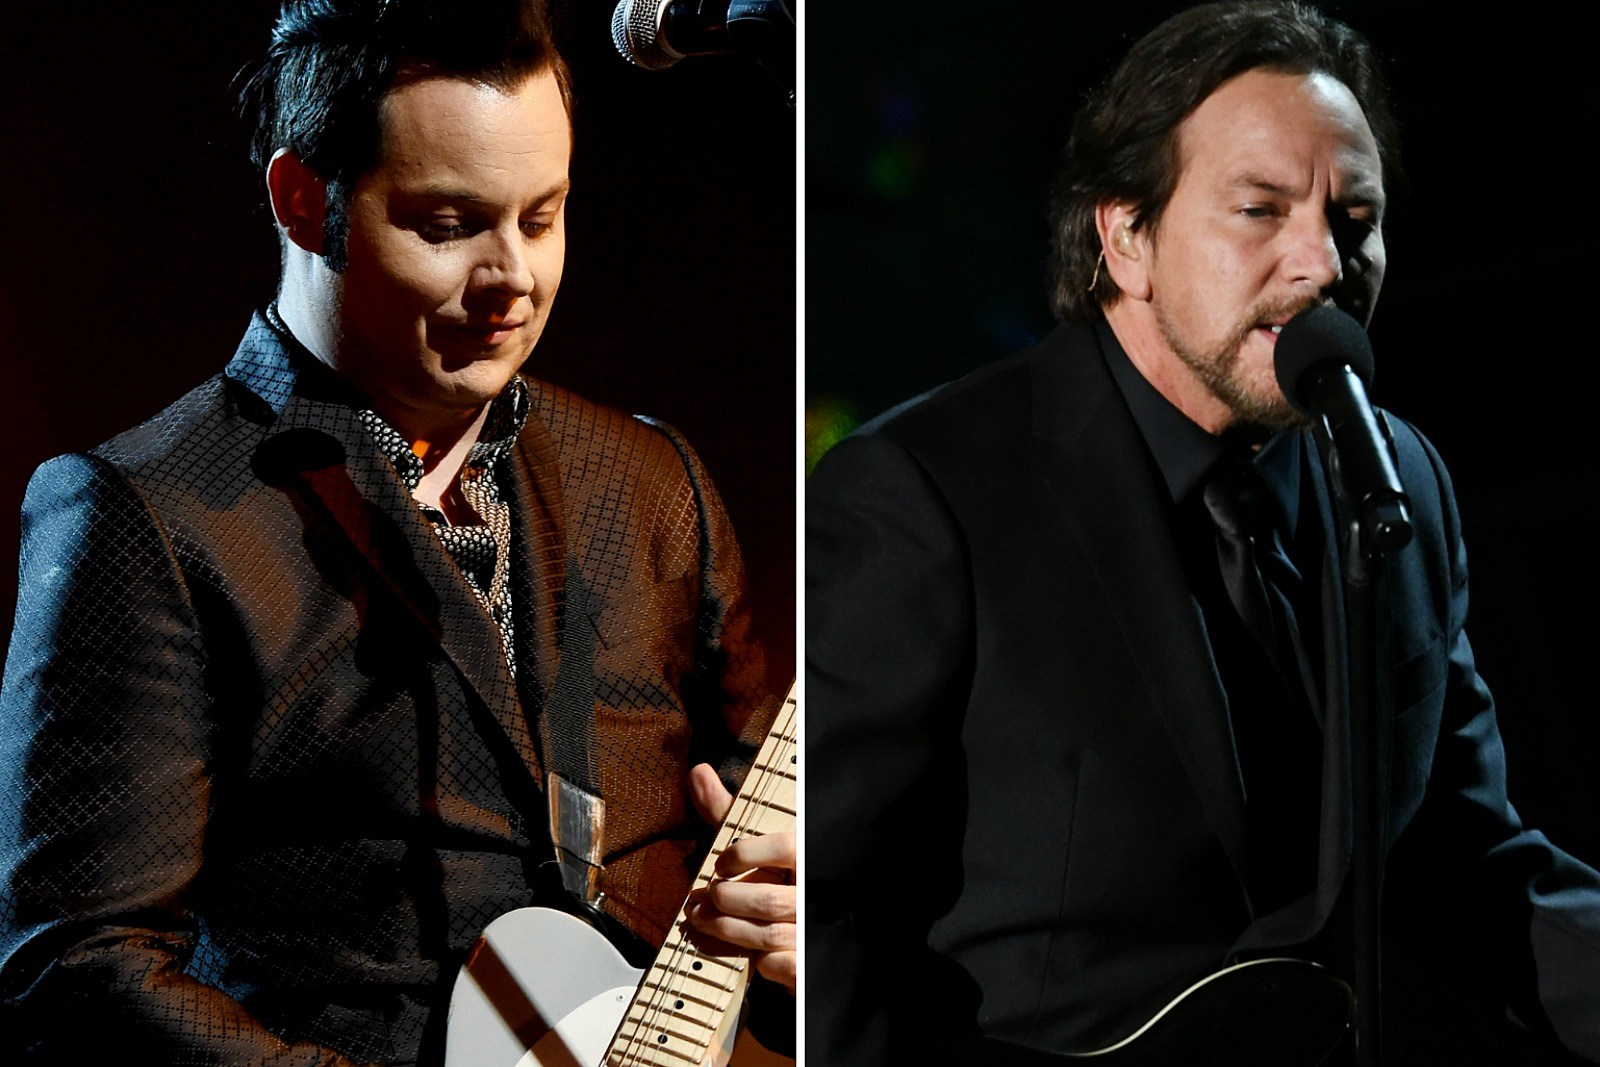 Jack White Joins Pearl Jam for Neil Young Cover